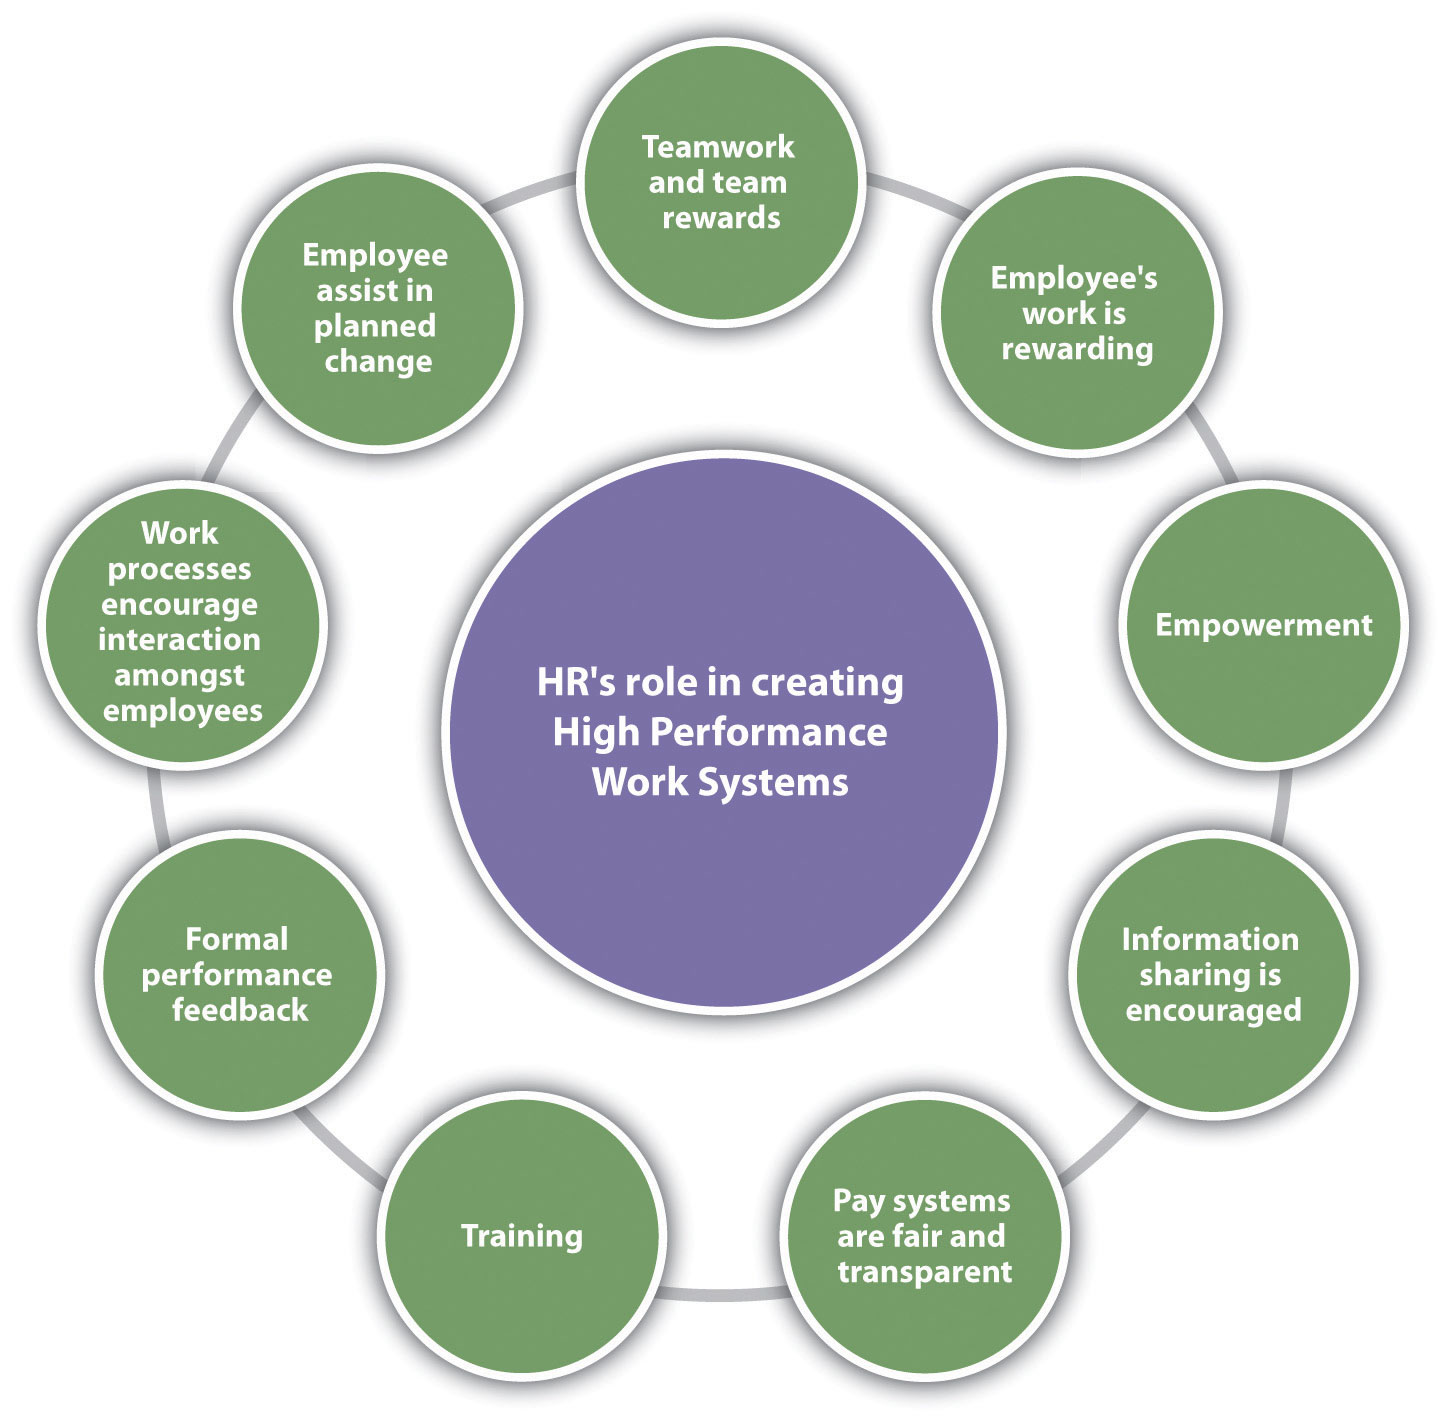 HR components of a HPWS (High Performance Work Systems): Teamwork and team rewards, employee's work is rewarding, empowerment, information sharing is encouraged, pay systems are fair and transparent, training, formal performance feedback, work processes encourage interaction amongst employees, and employee assist in planned change are just some examples.